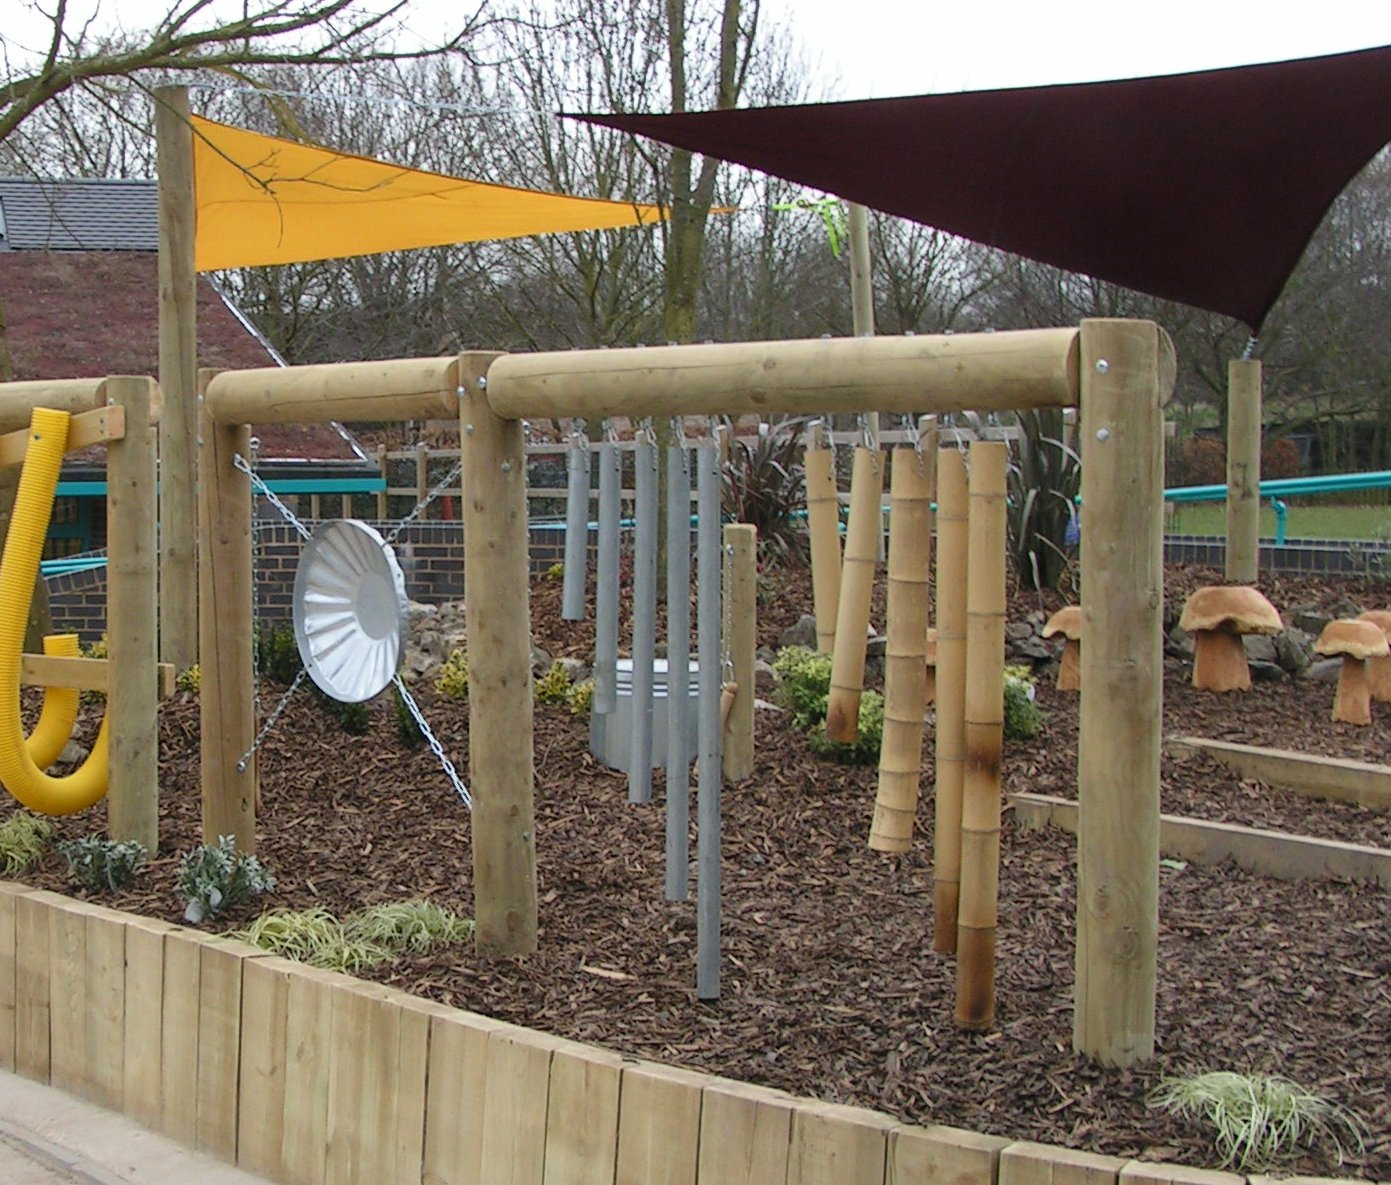 Gardens of reflection for Sensory garden designs